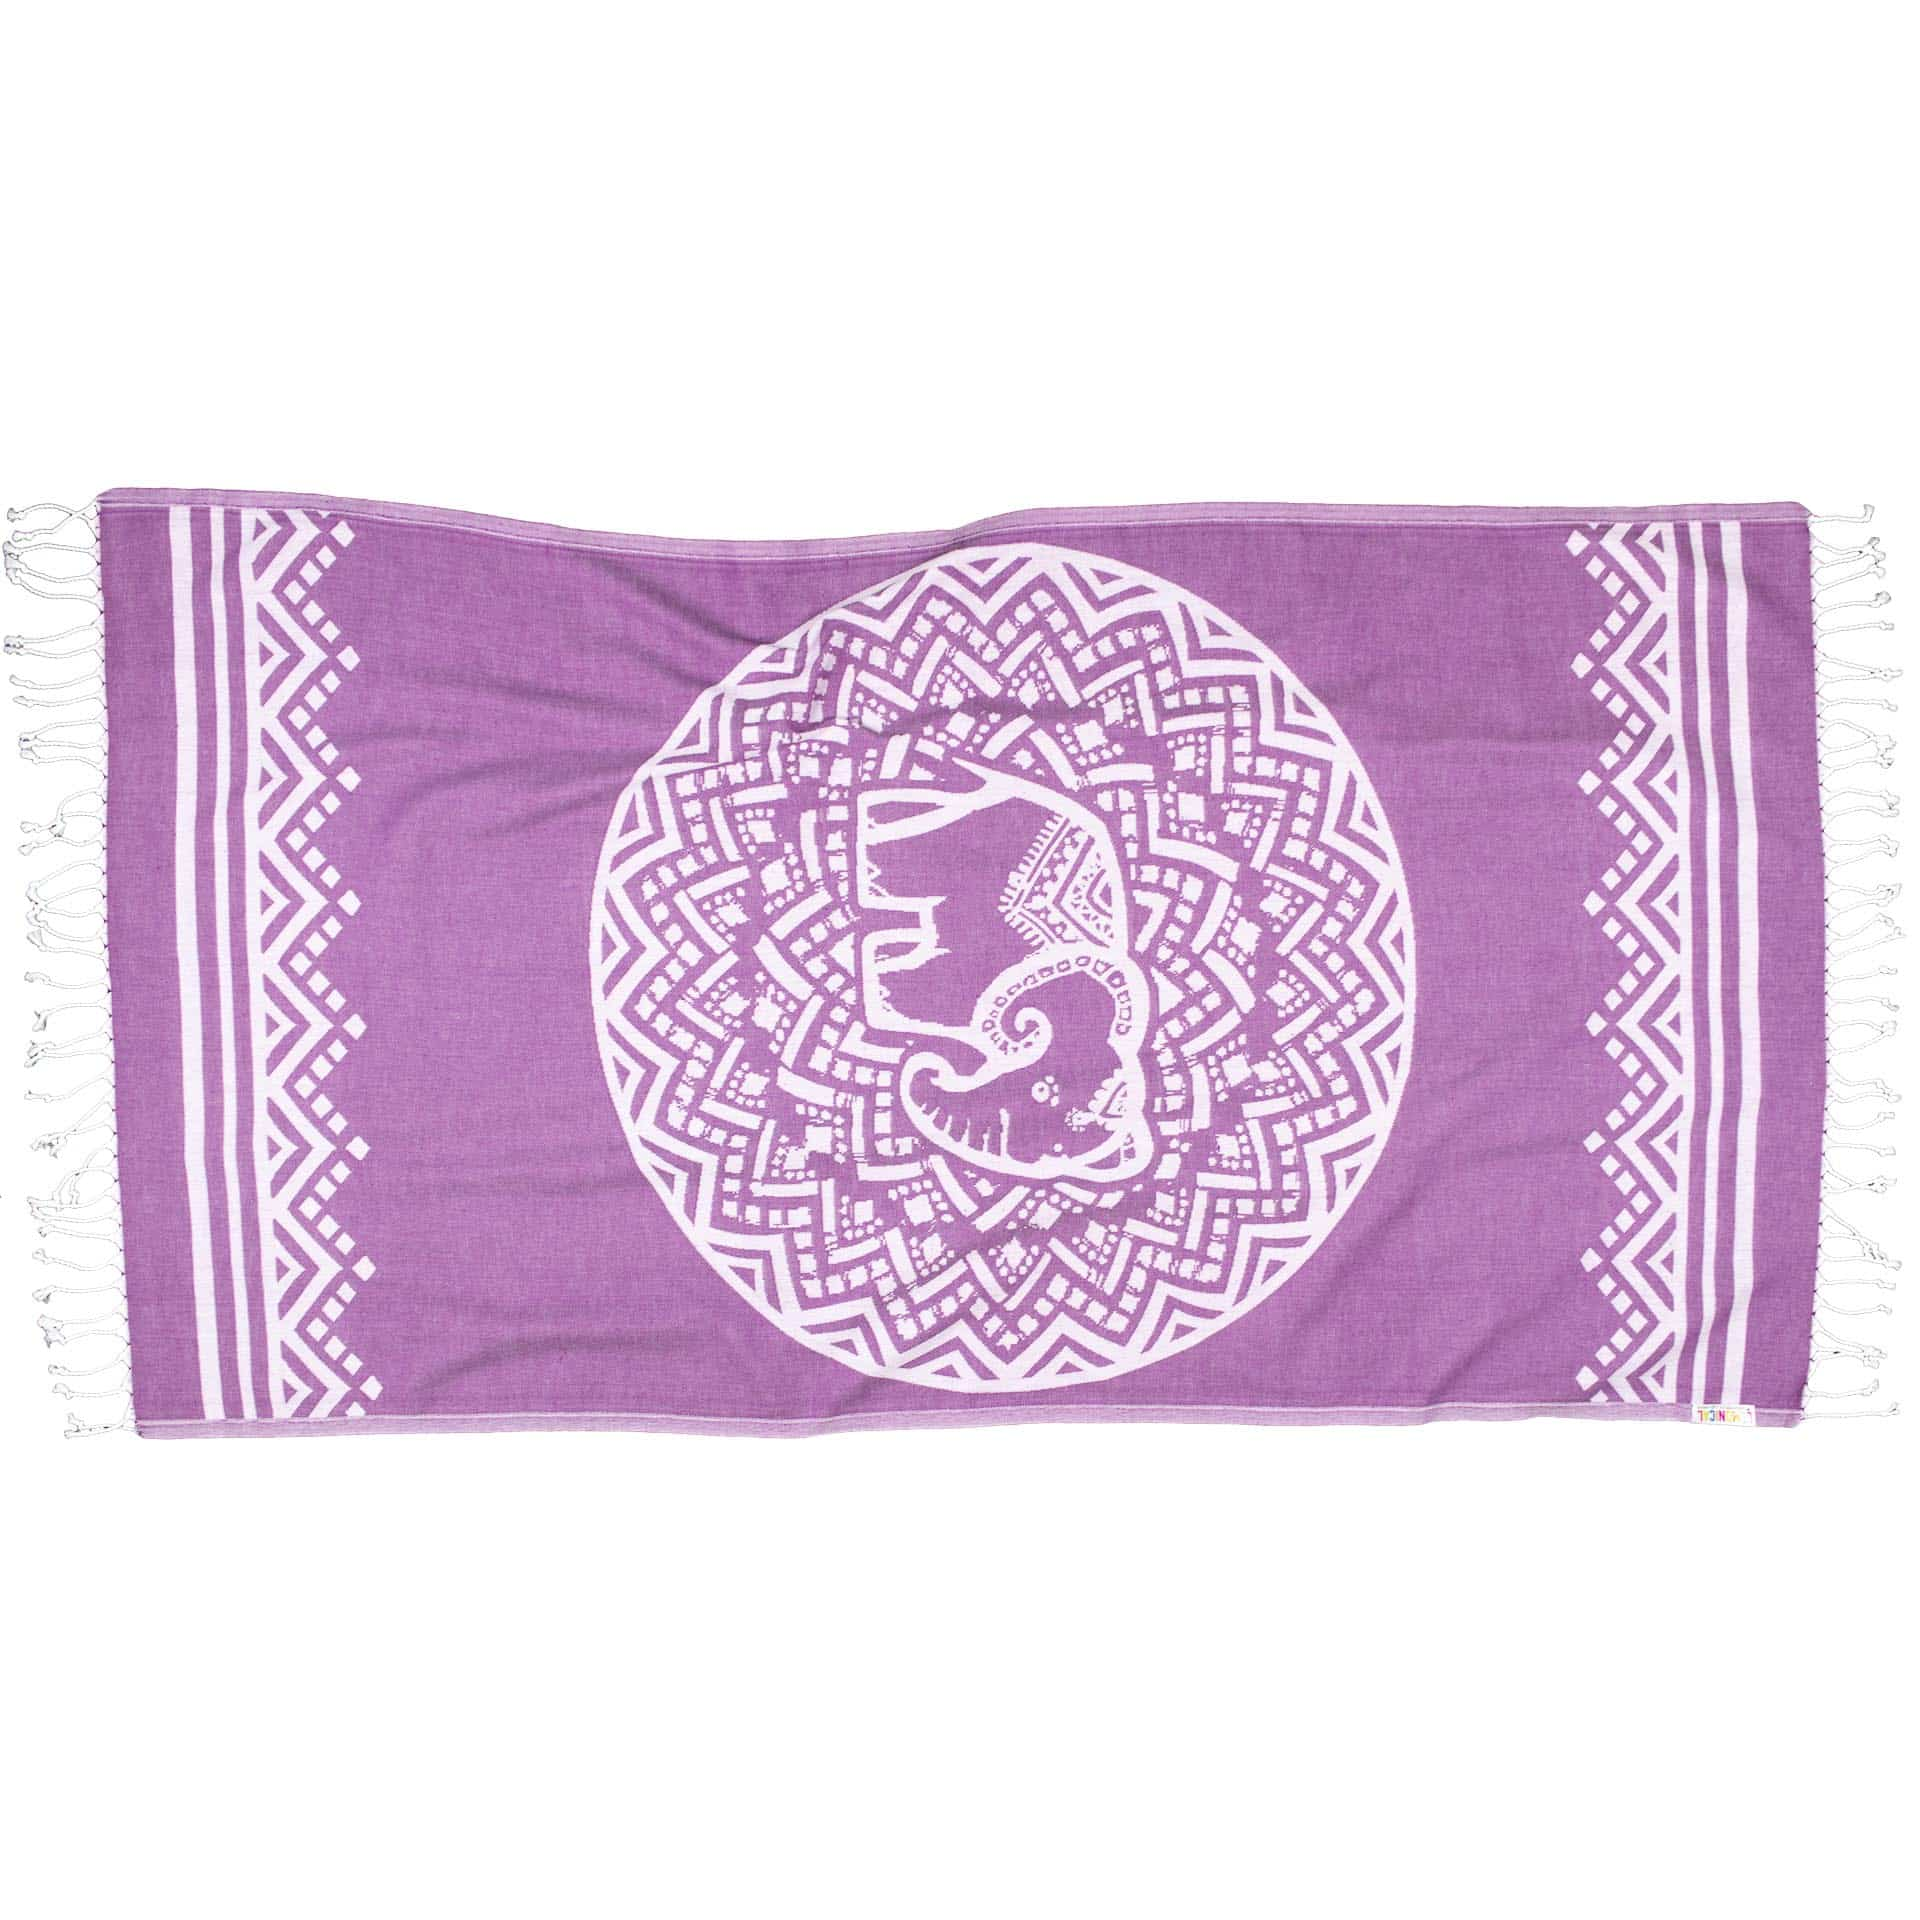 PURPLE-ELEPHANT-Towel-Lemonical-1